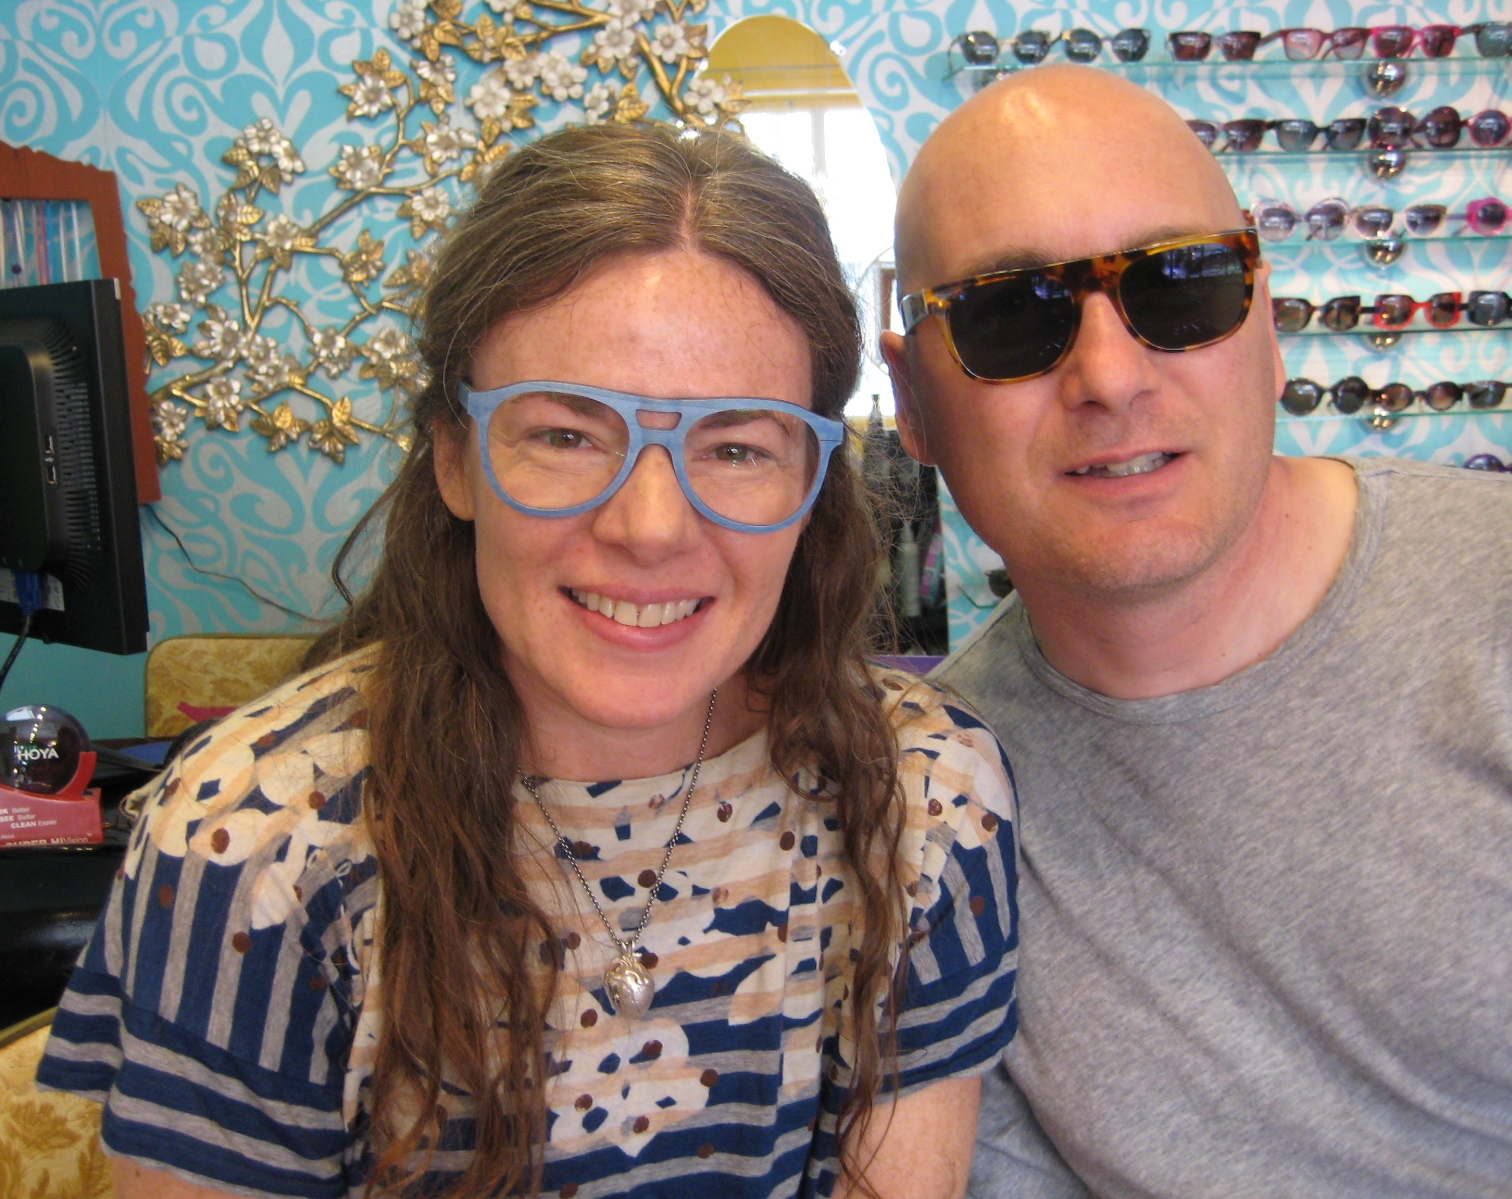 Lisa & Frank in their new Feb31st and Super sunglasses!